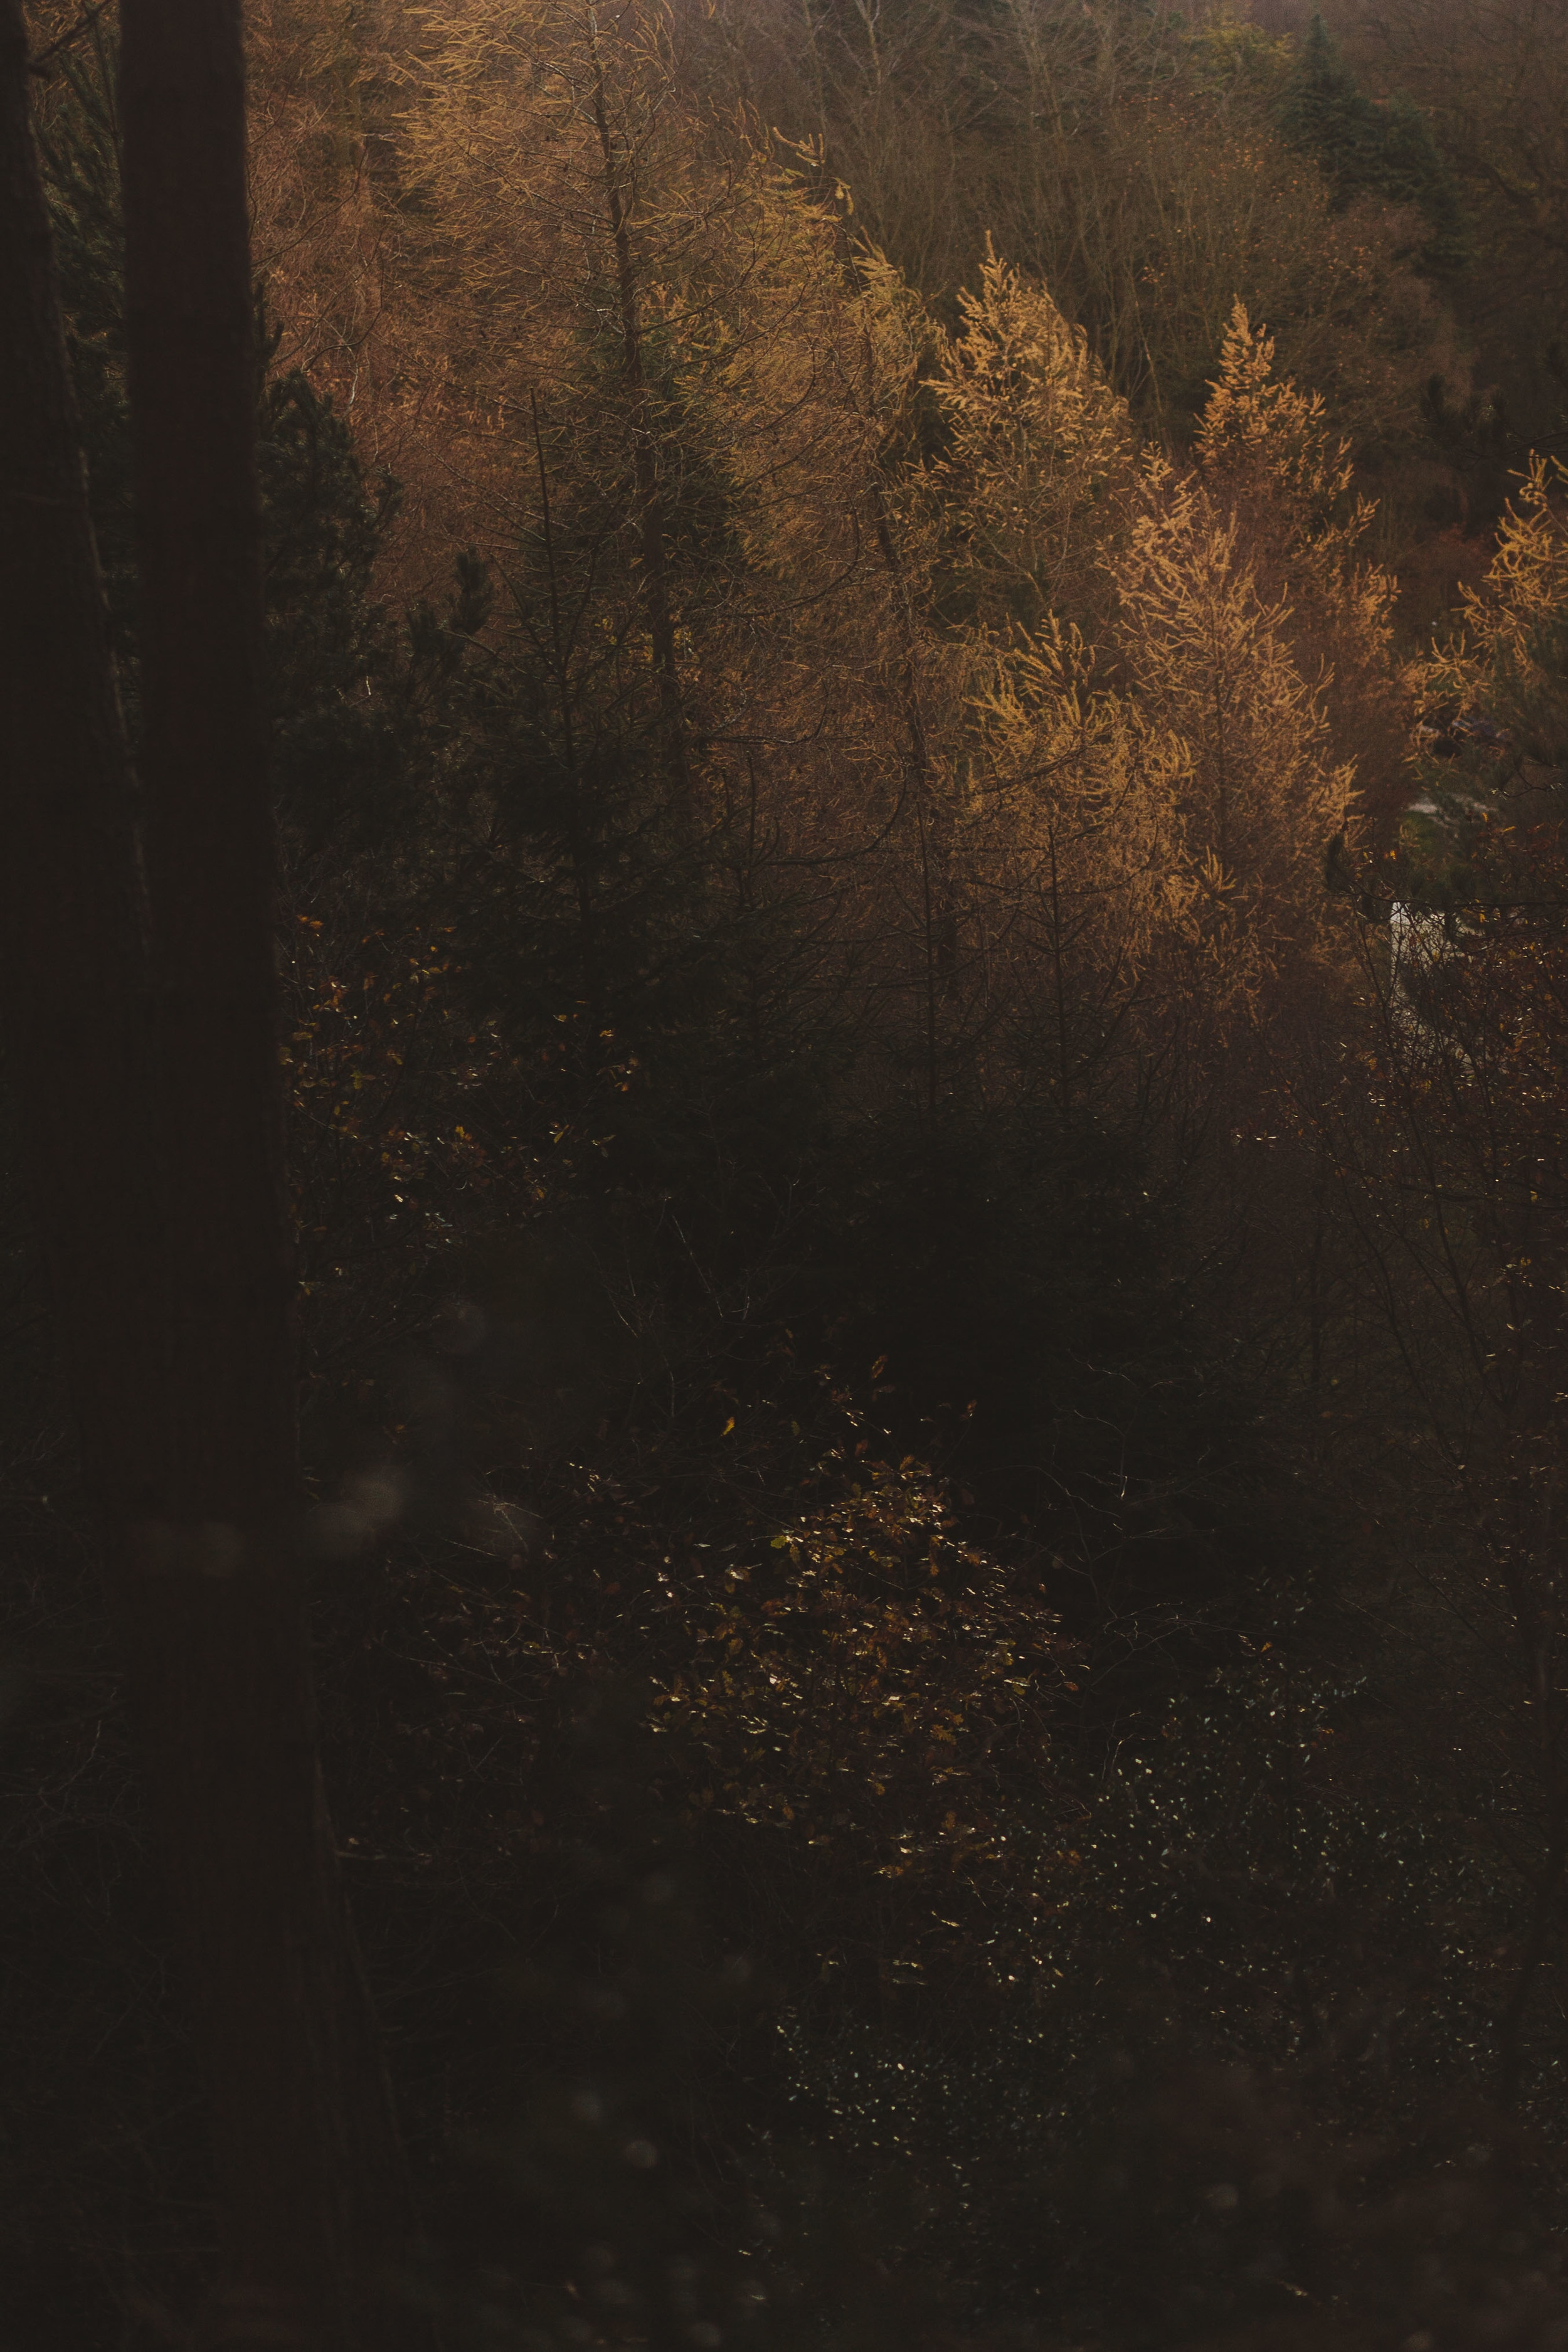 Barry Forshaw // Engagement shoot scouting at Chopwell Woods // Autumn trees caught in sunlight